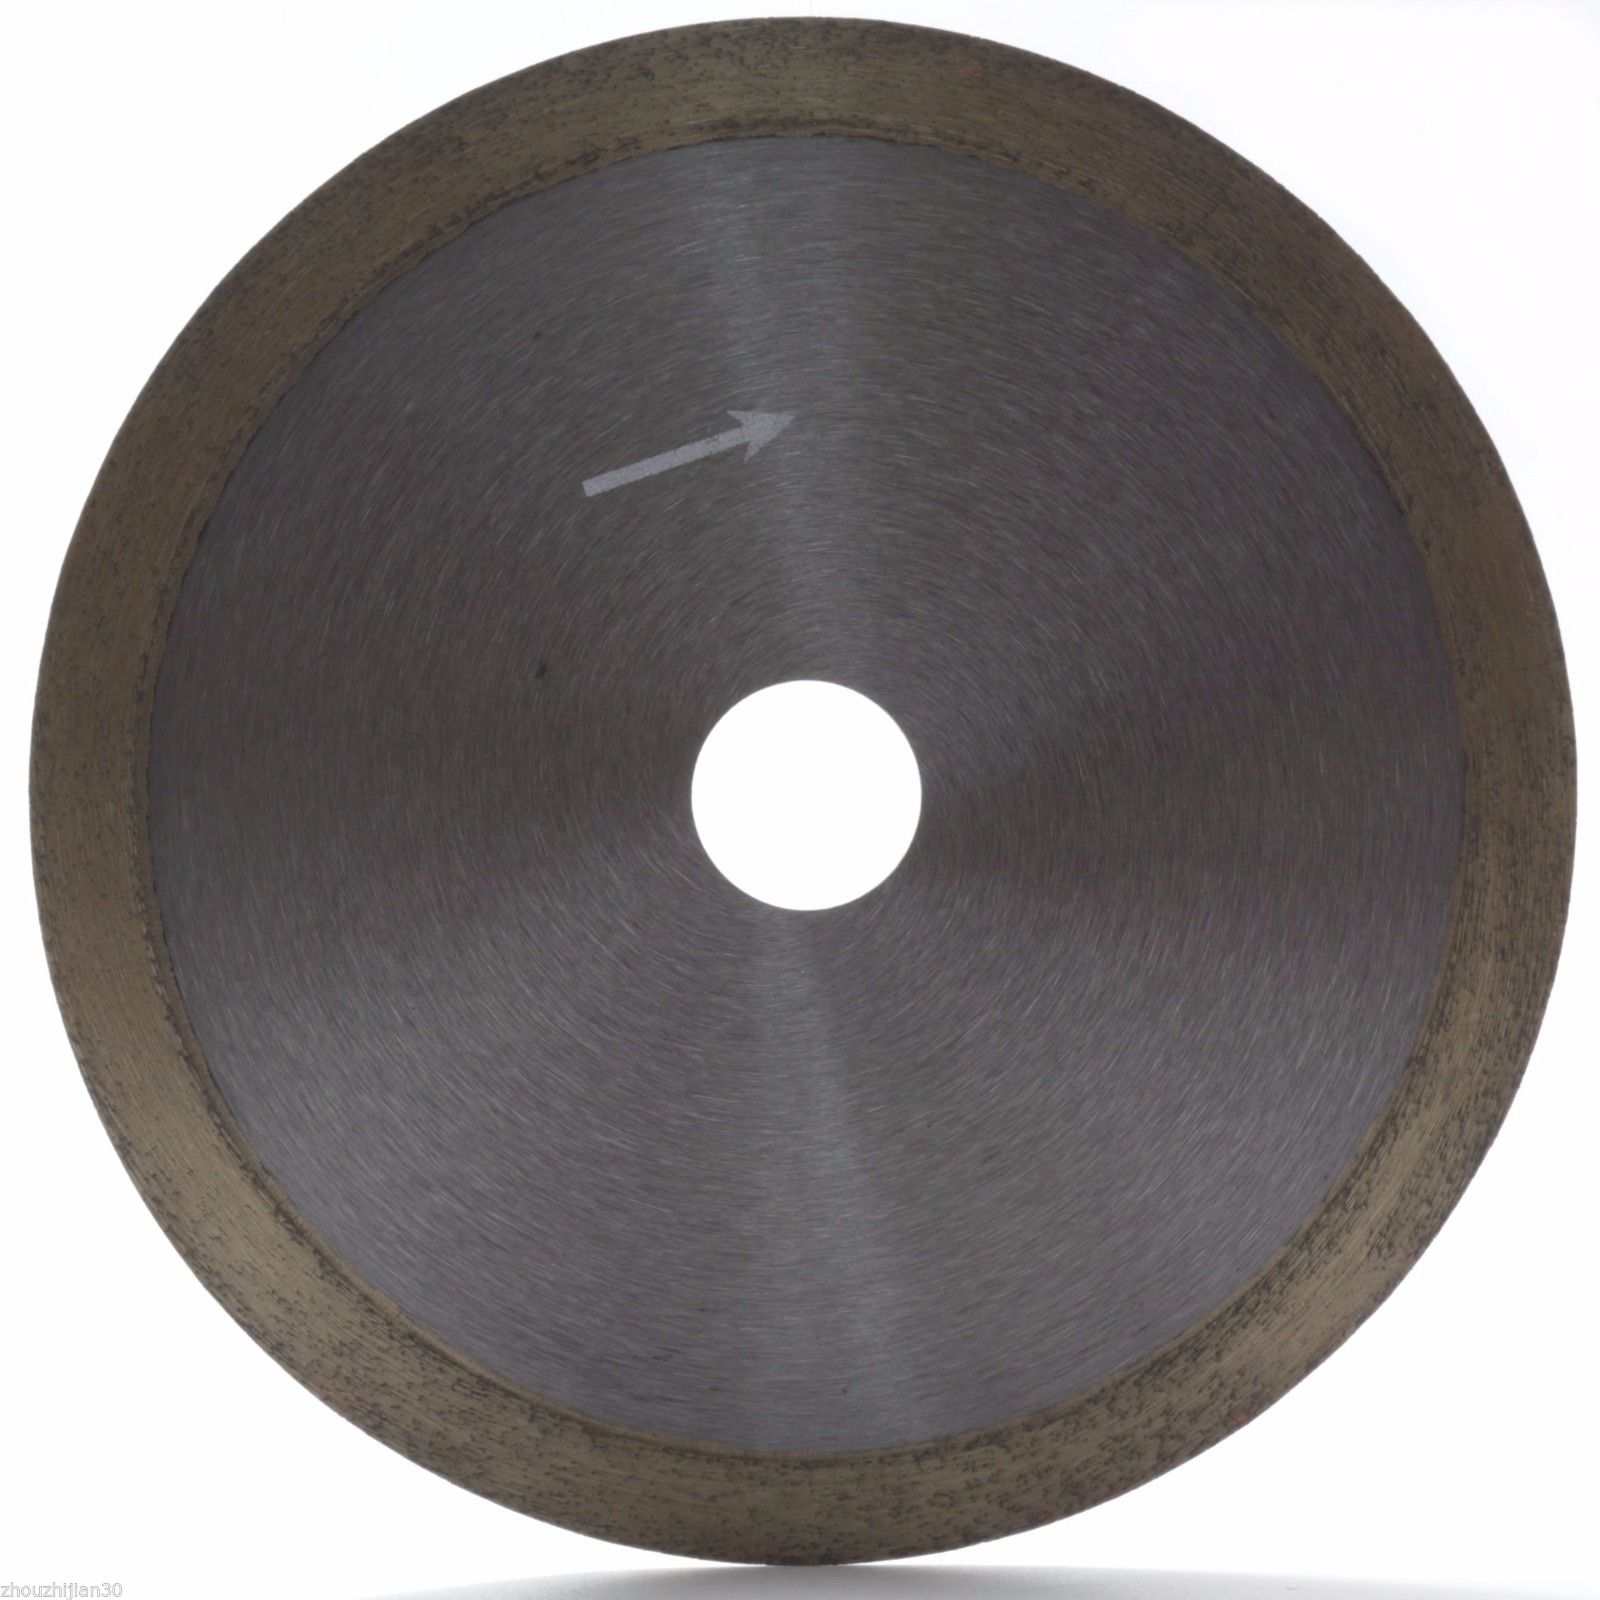 6 inch Sintered Diamond Blade Saw Wet Cutting Glass Continuous Rim Arbor 7/8 ILOVETOOL<br>